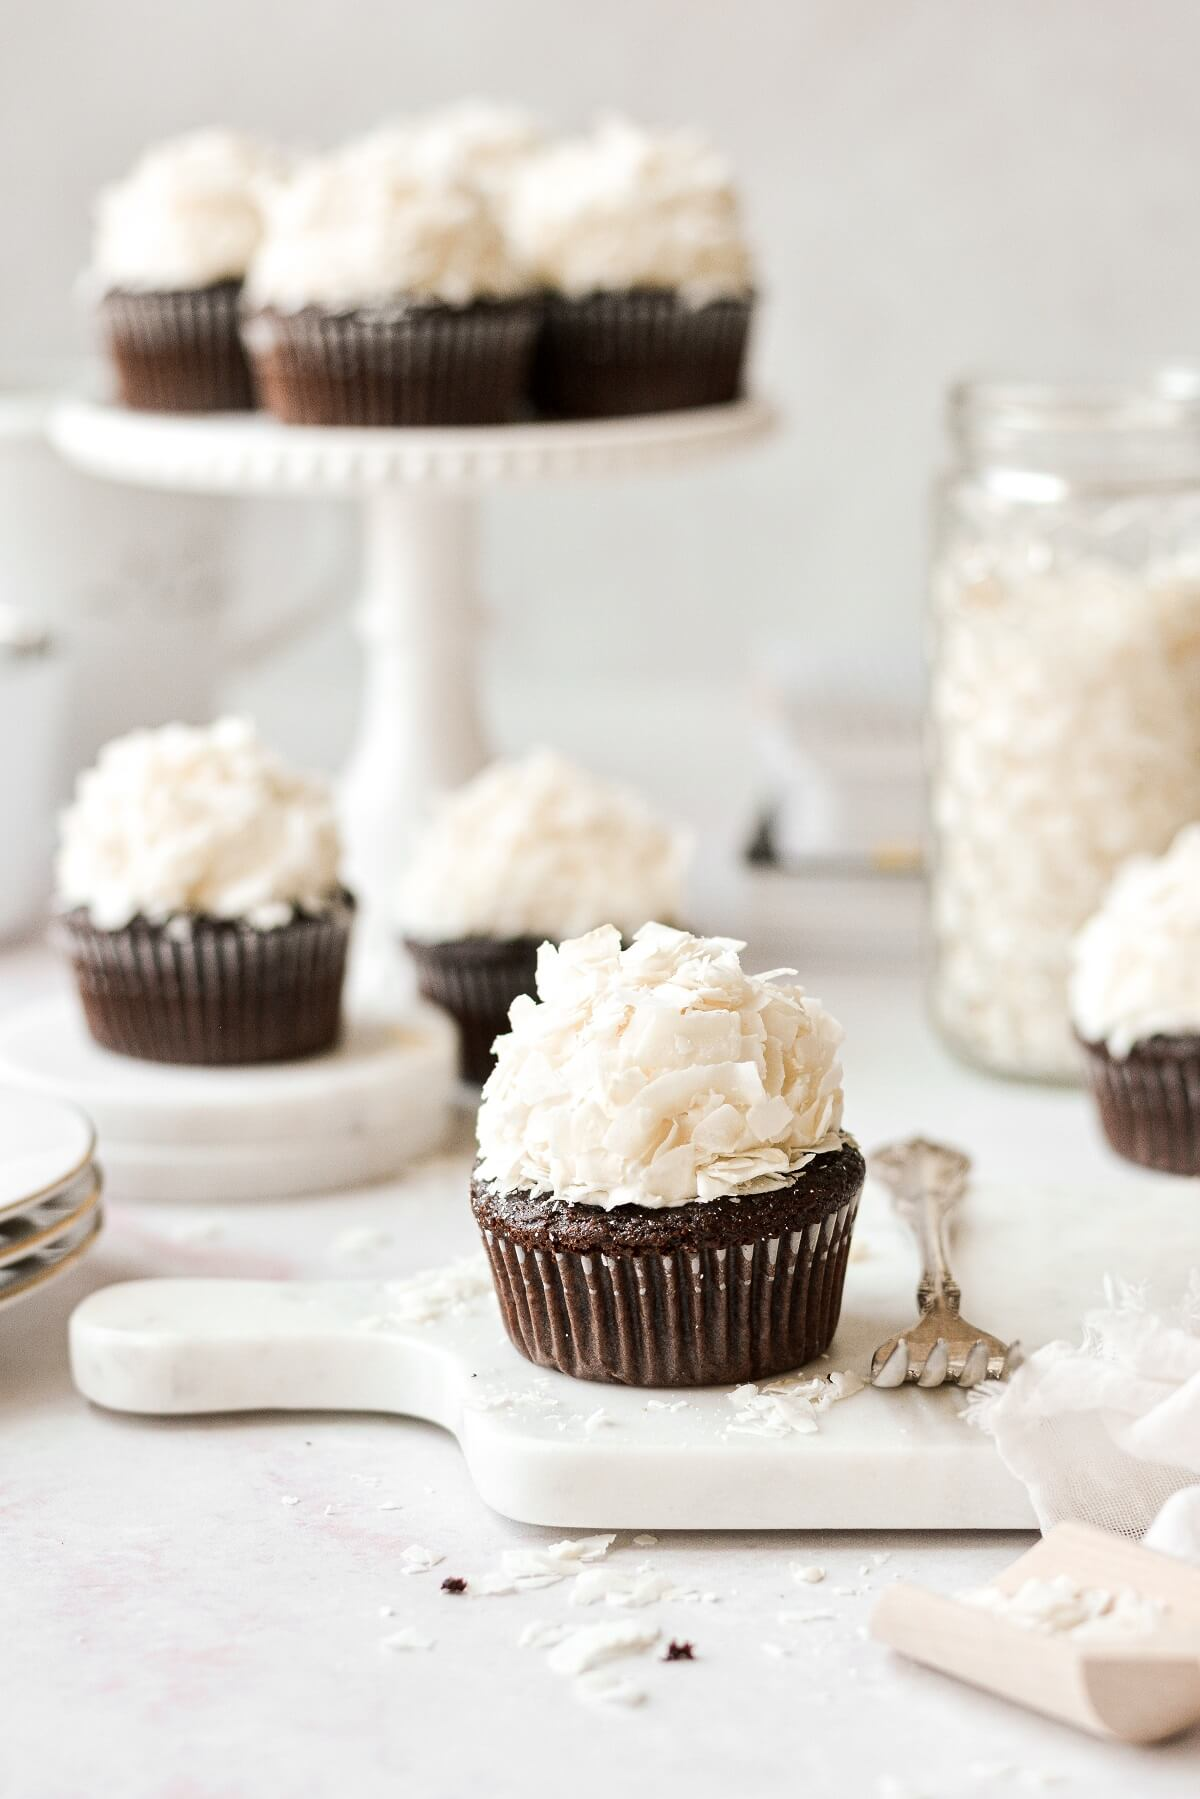 Chocolate coconut cupcakes on a marble board.